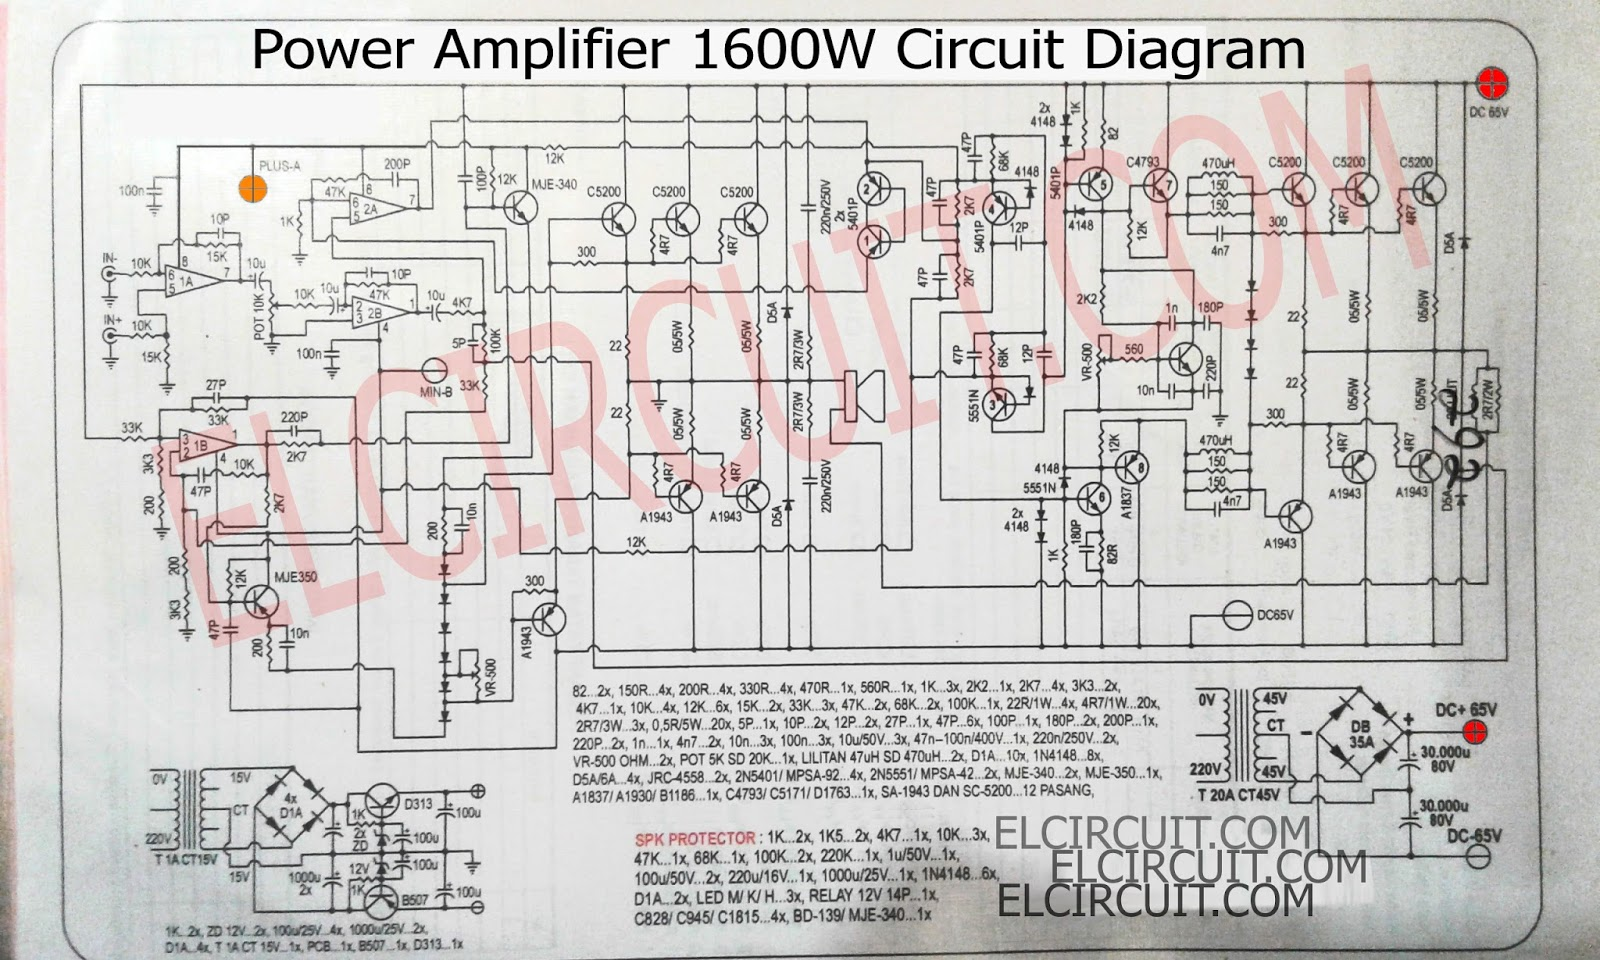 Schematic High Power Circuit Amplifier - Wiring Diagram Filter